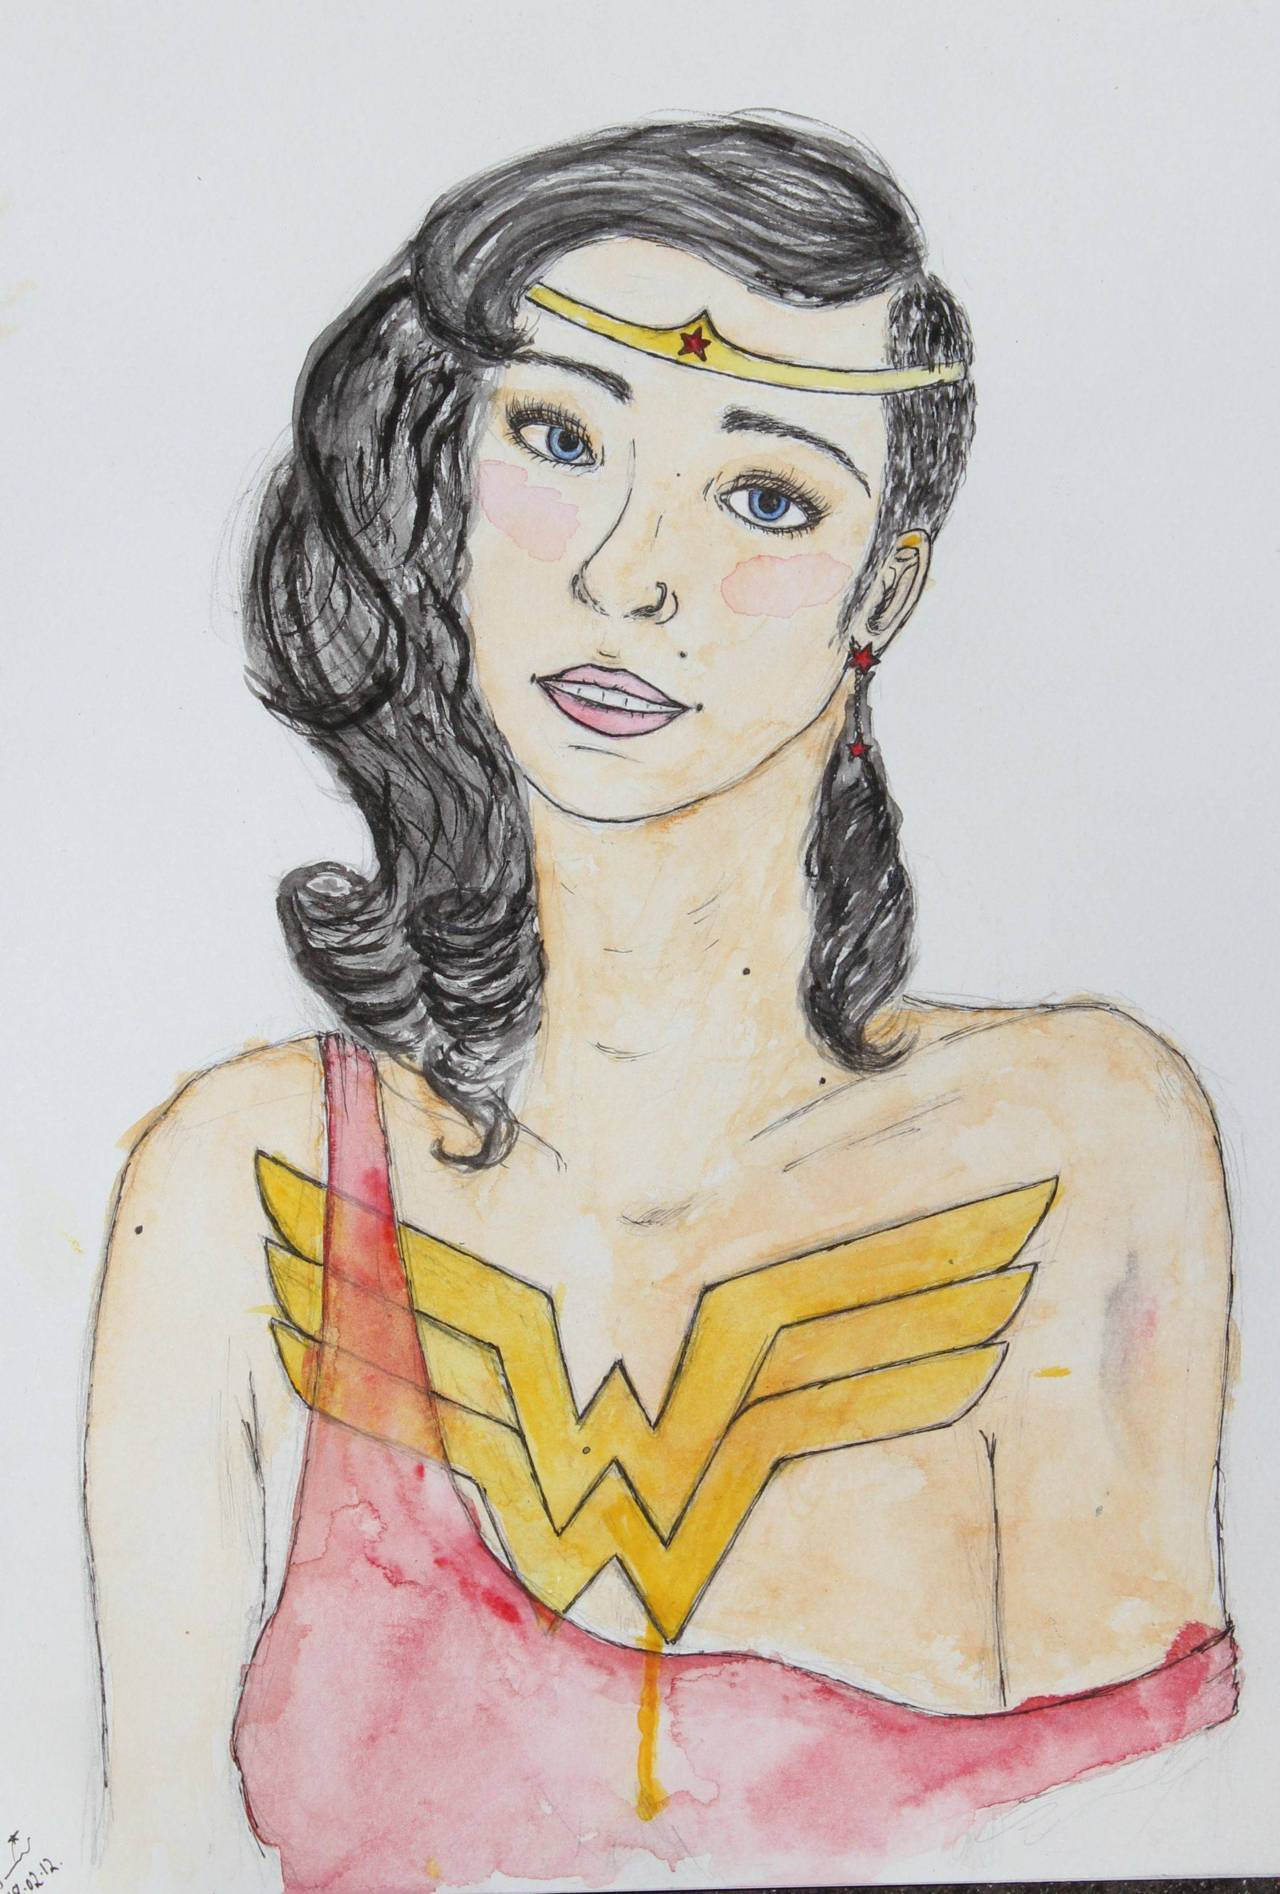 Wonder Women as I would love to see her. Painted version of my sketch from the day, I love watercolours when they're applied roughly but I'm still getting a feel for them. I'm pretty pleased with how this turned out, at least at the moment. (PS; I still want that tattoo)